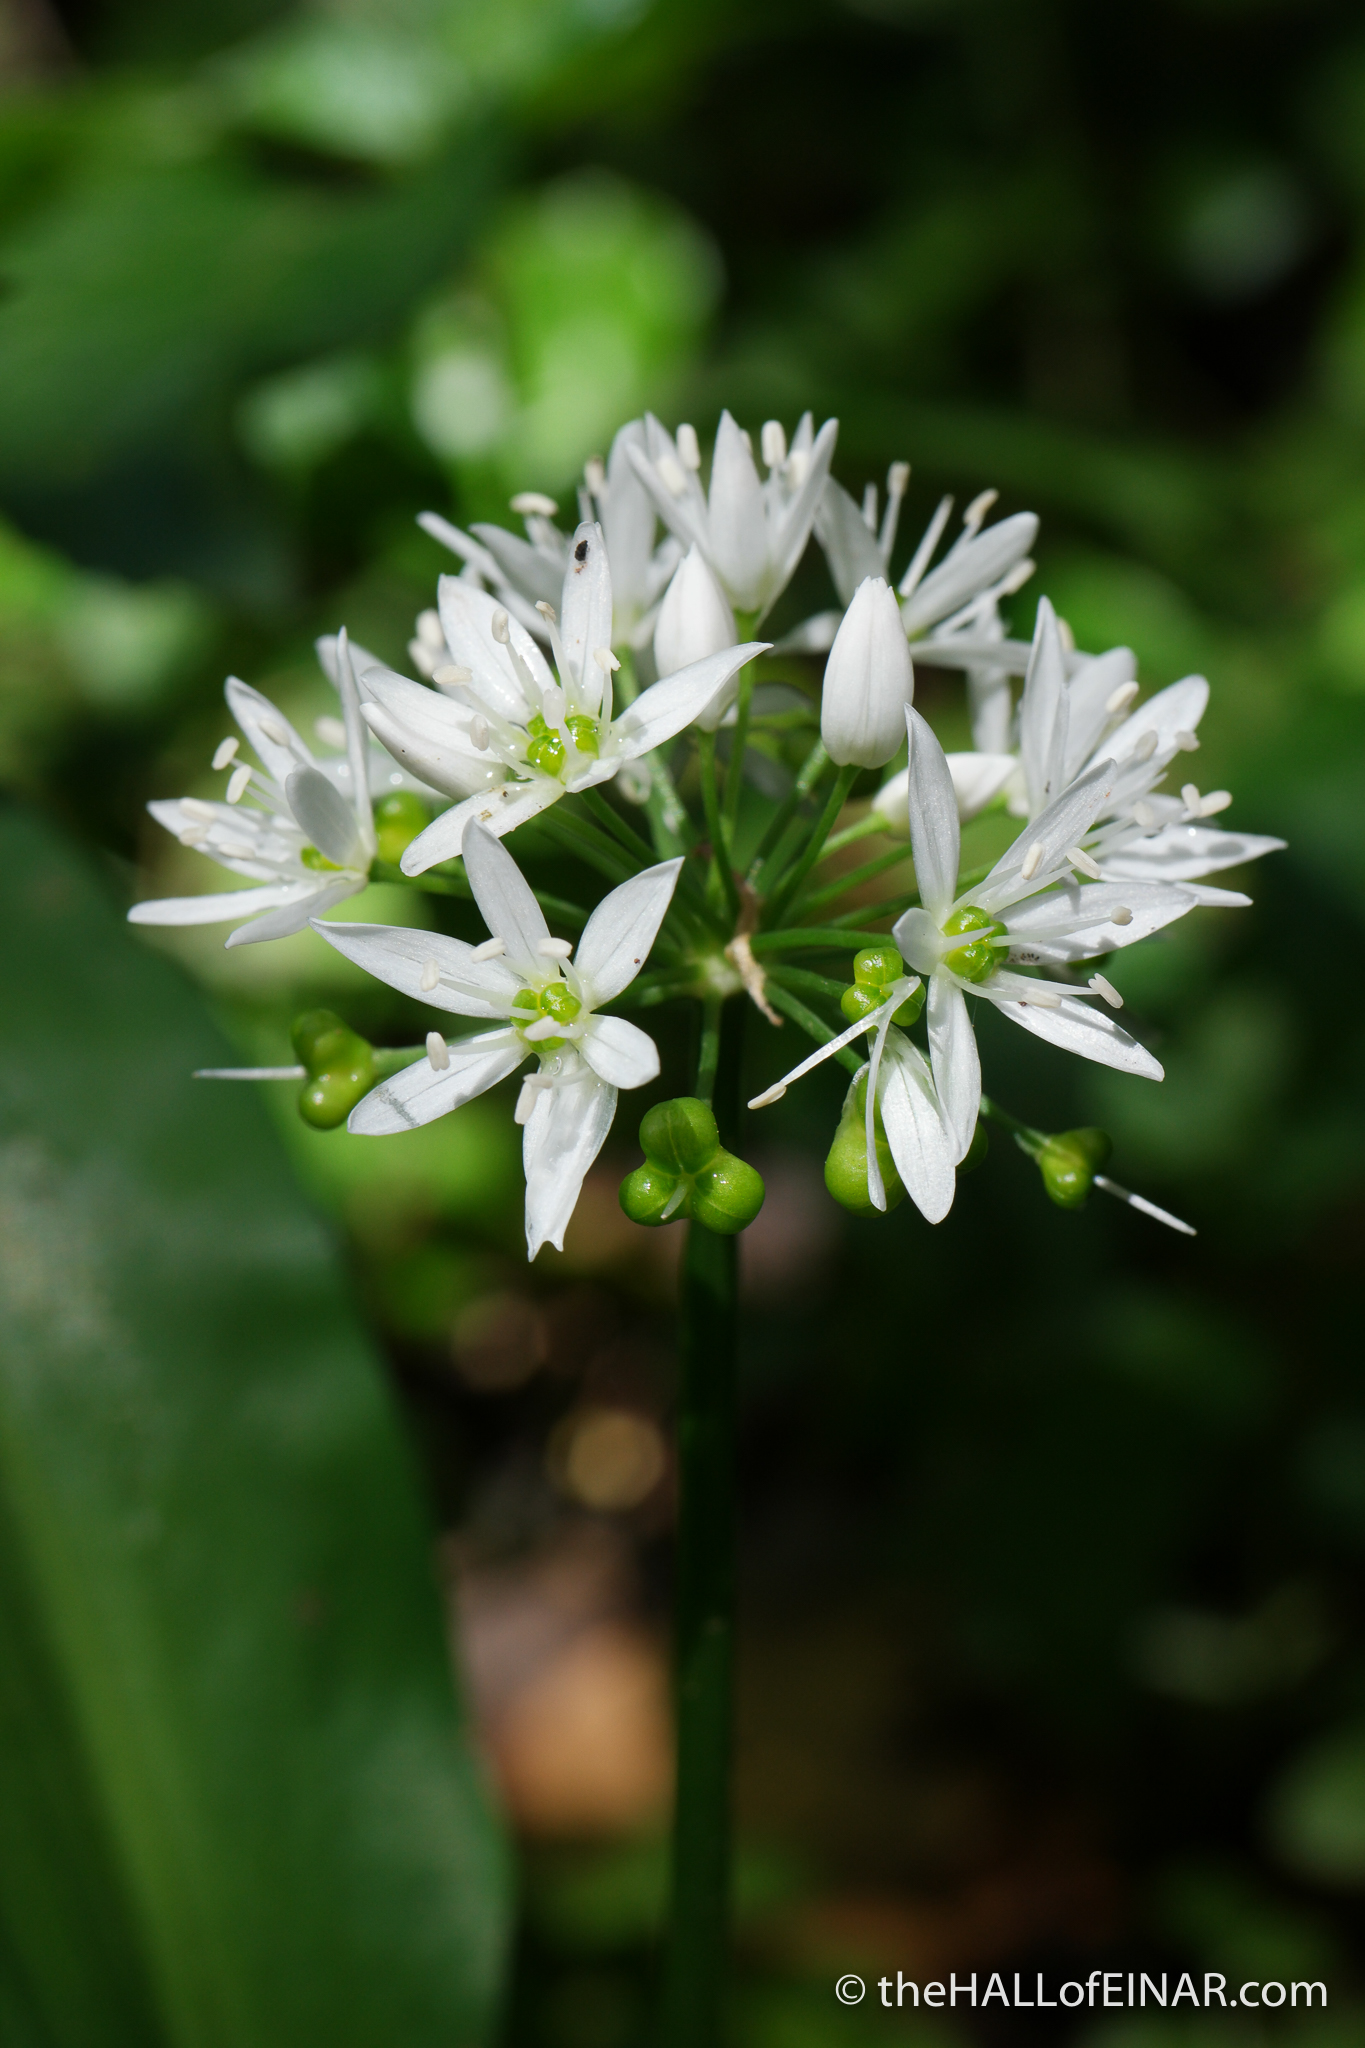 Wild Garlic - The Hall of Einar - photograph (c) David Bailey (not the)